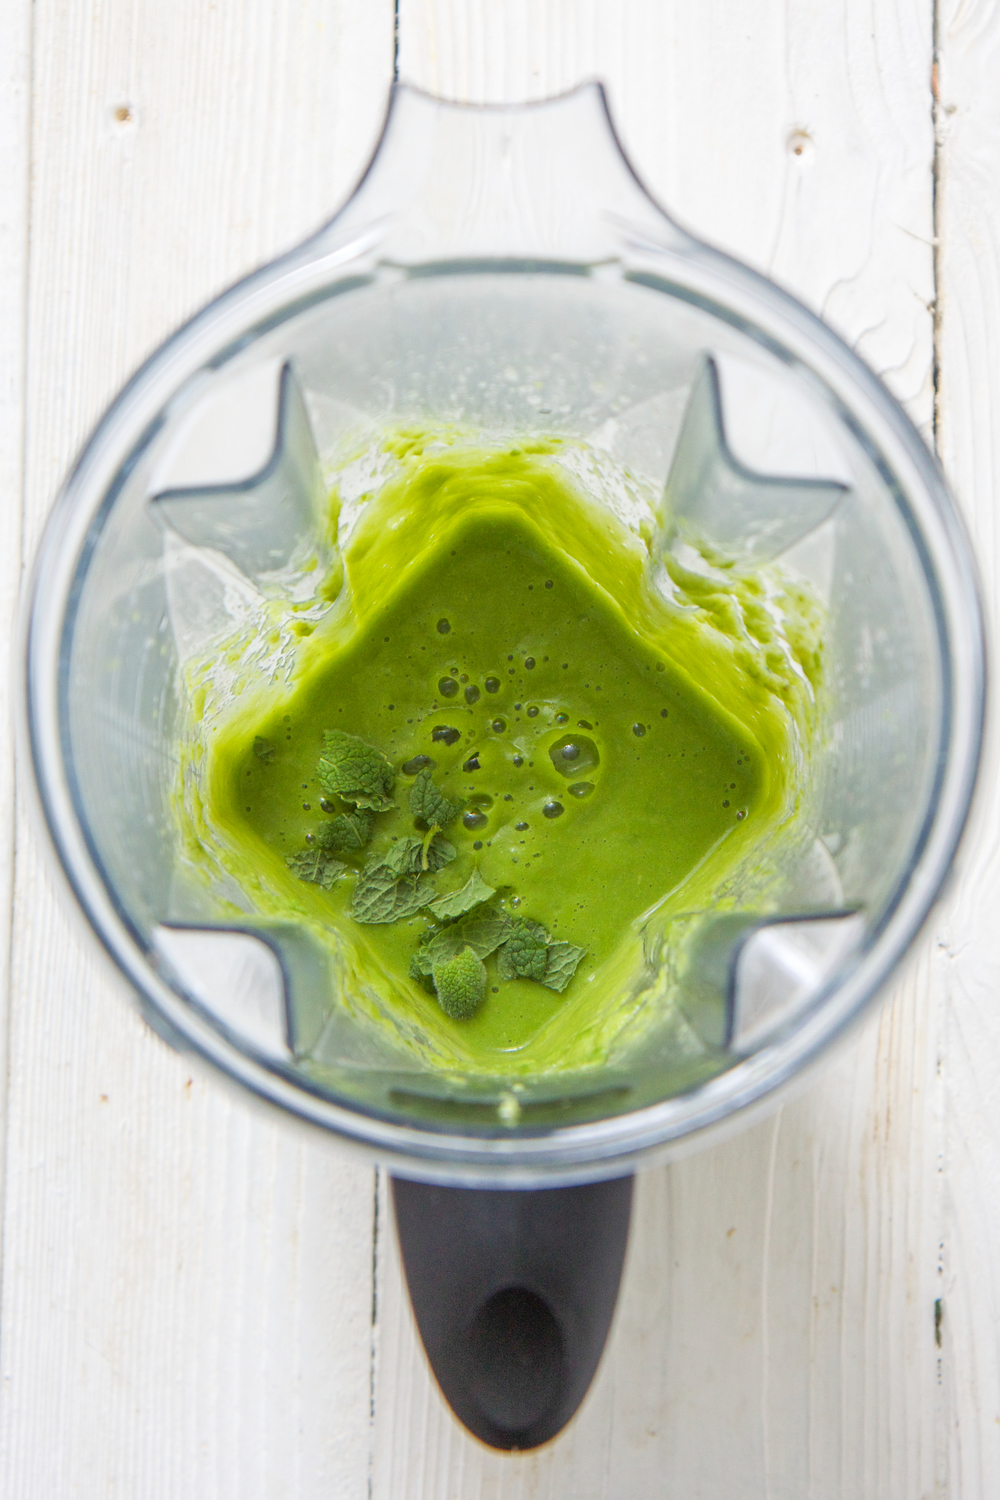 Asparagus and mint puree is a thick and creamy combination with a light and playful taste that leaves you wanting more more more! This fast and easy homemade baby food puree is ready in just 20 minutes, and makes for a great freezer stash. Delight baby's taste buds with this healthy, vibrant asparagus and mint puree! #babyfood #babies